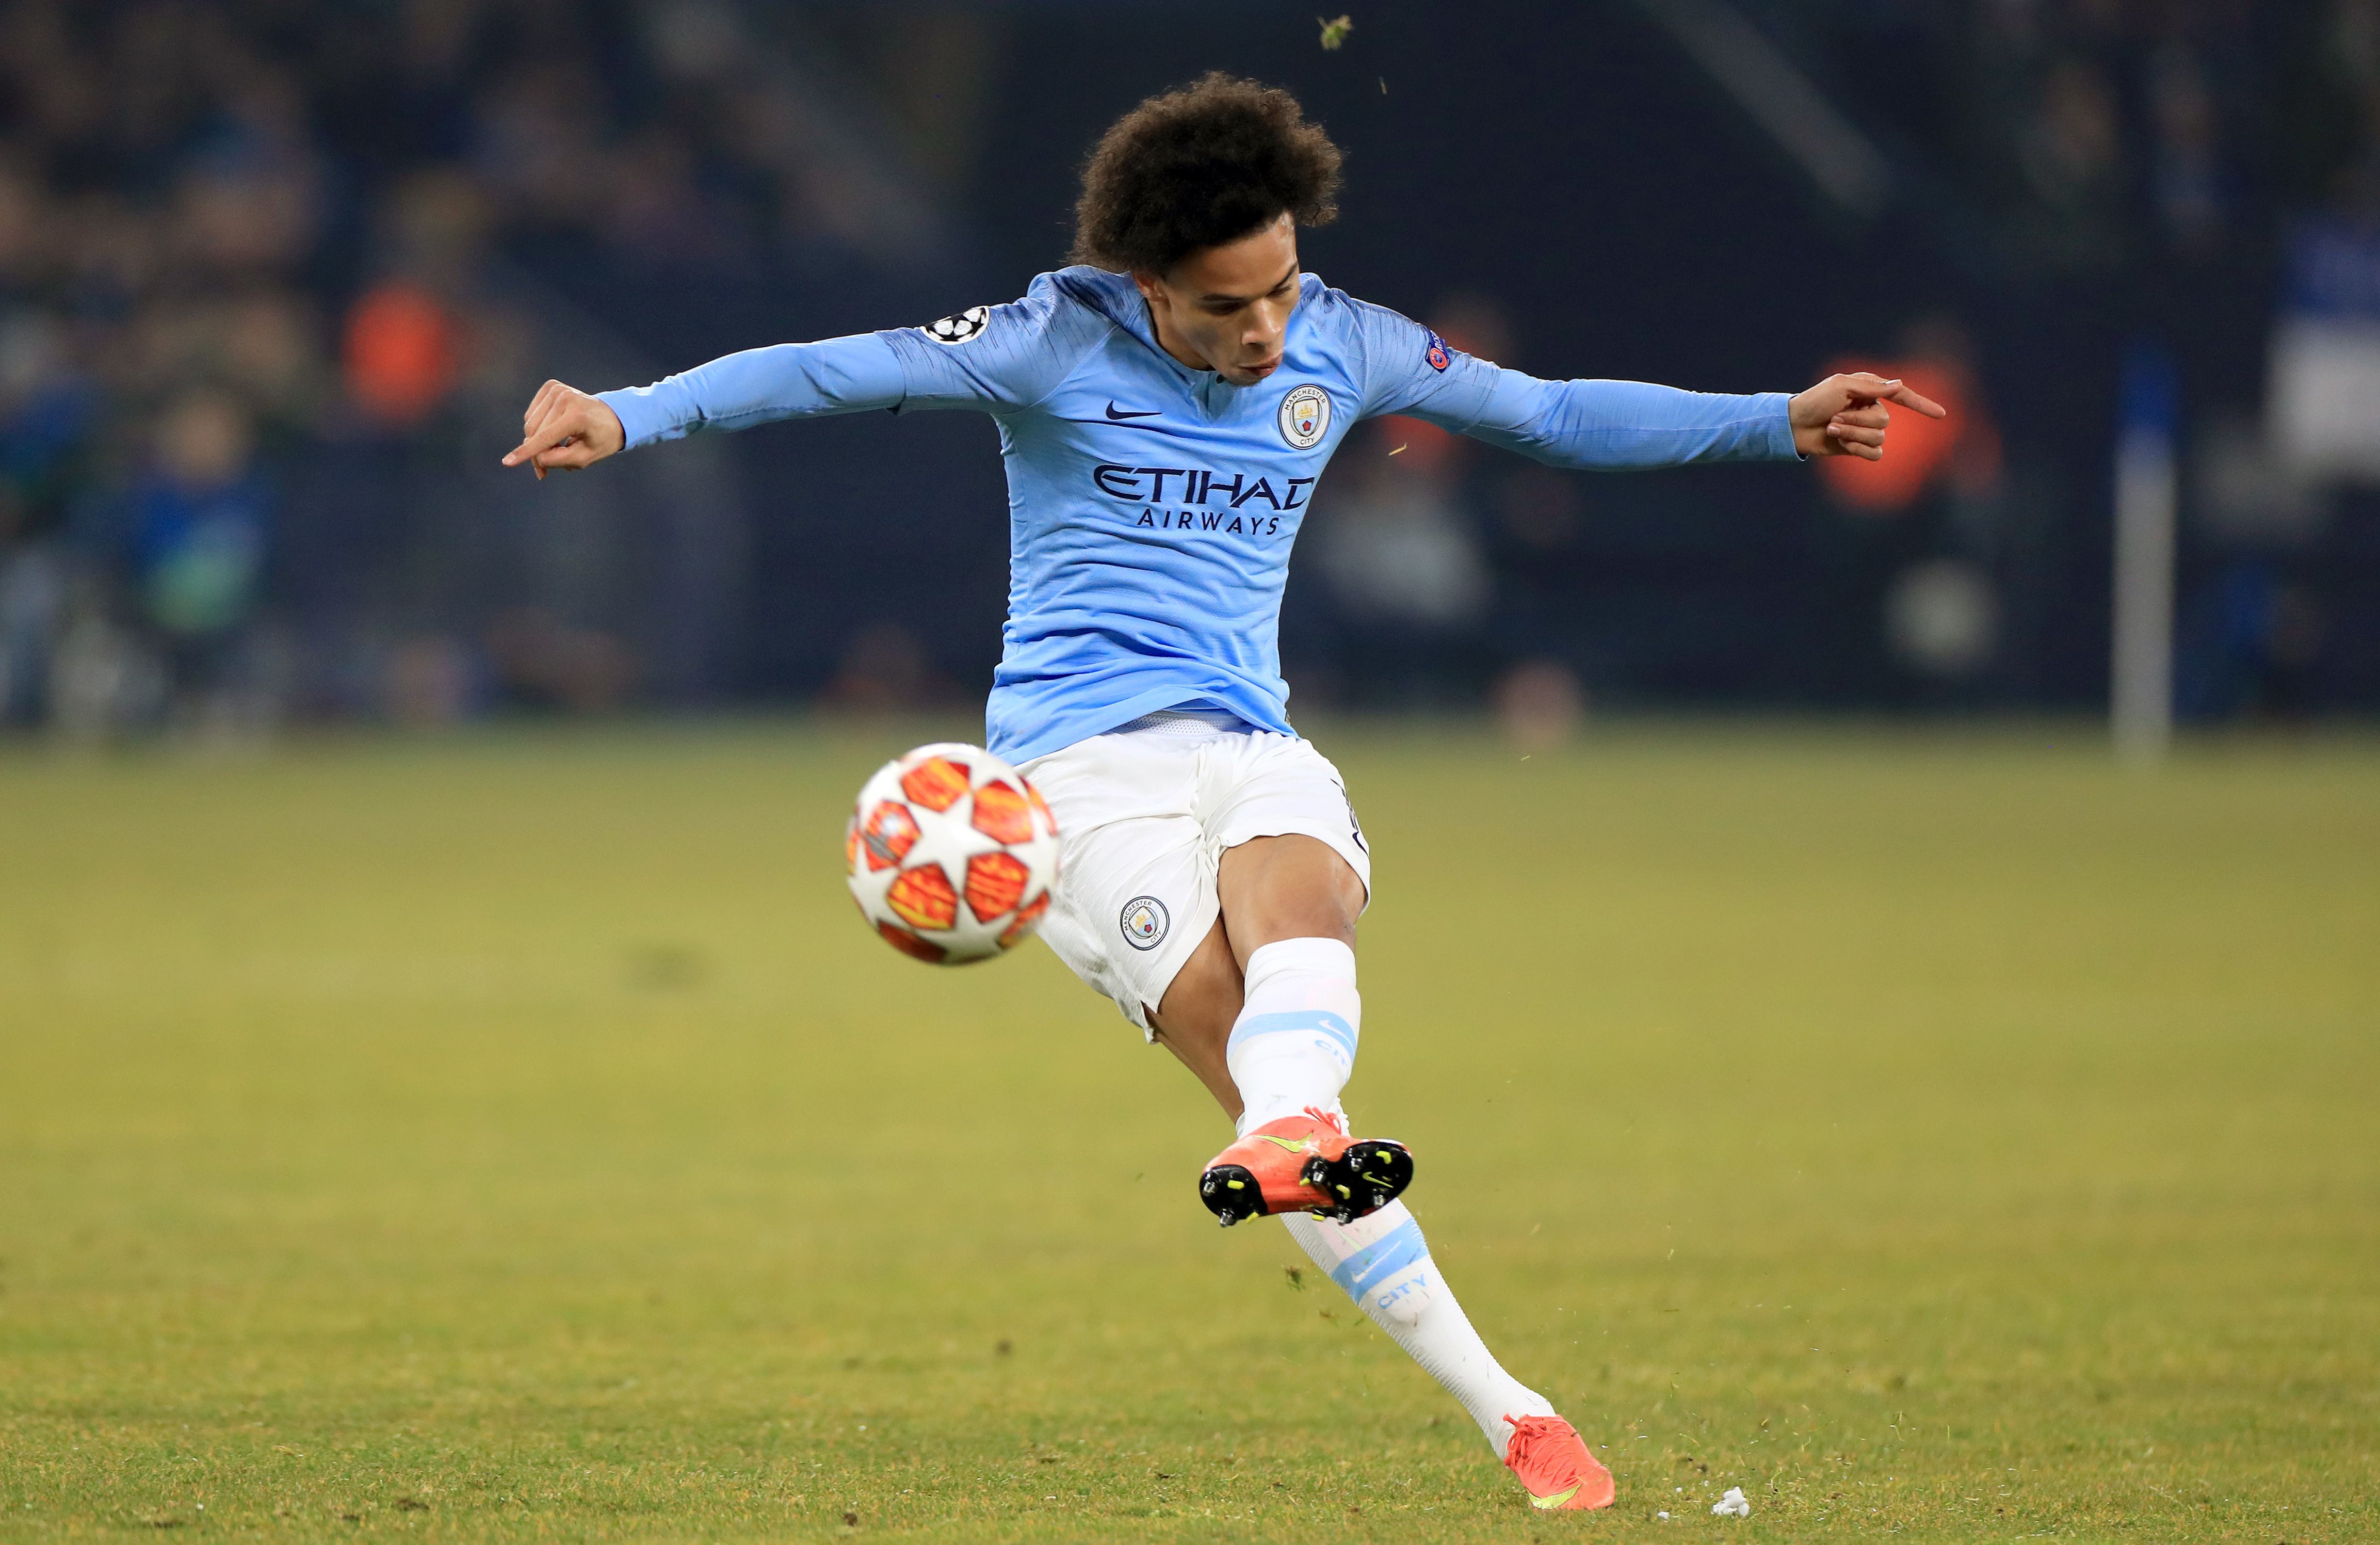 Guardiola reiterates Sane stay after Manchester City dismantles Kitchee